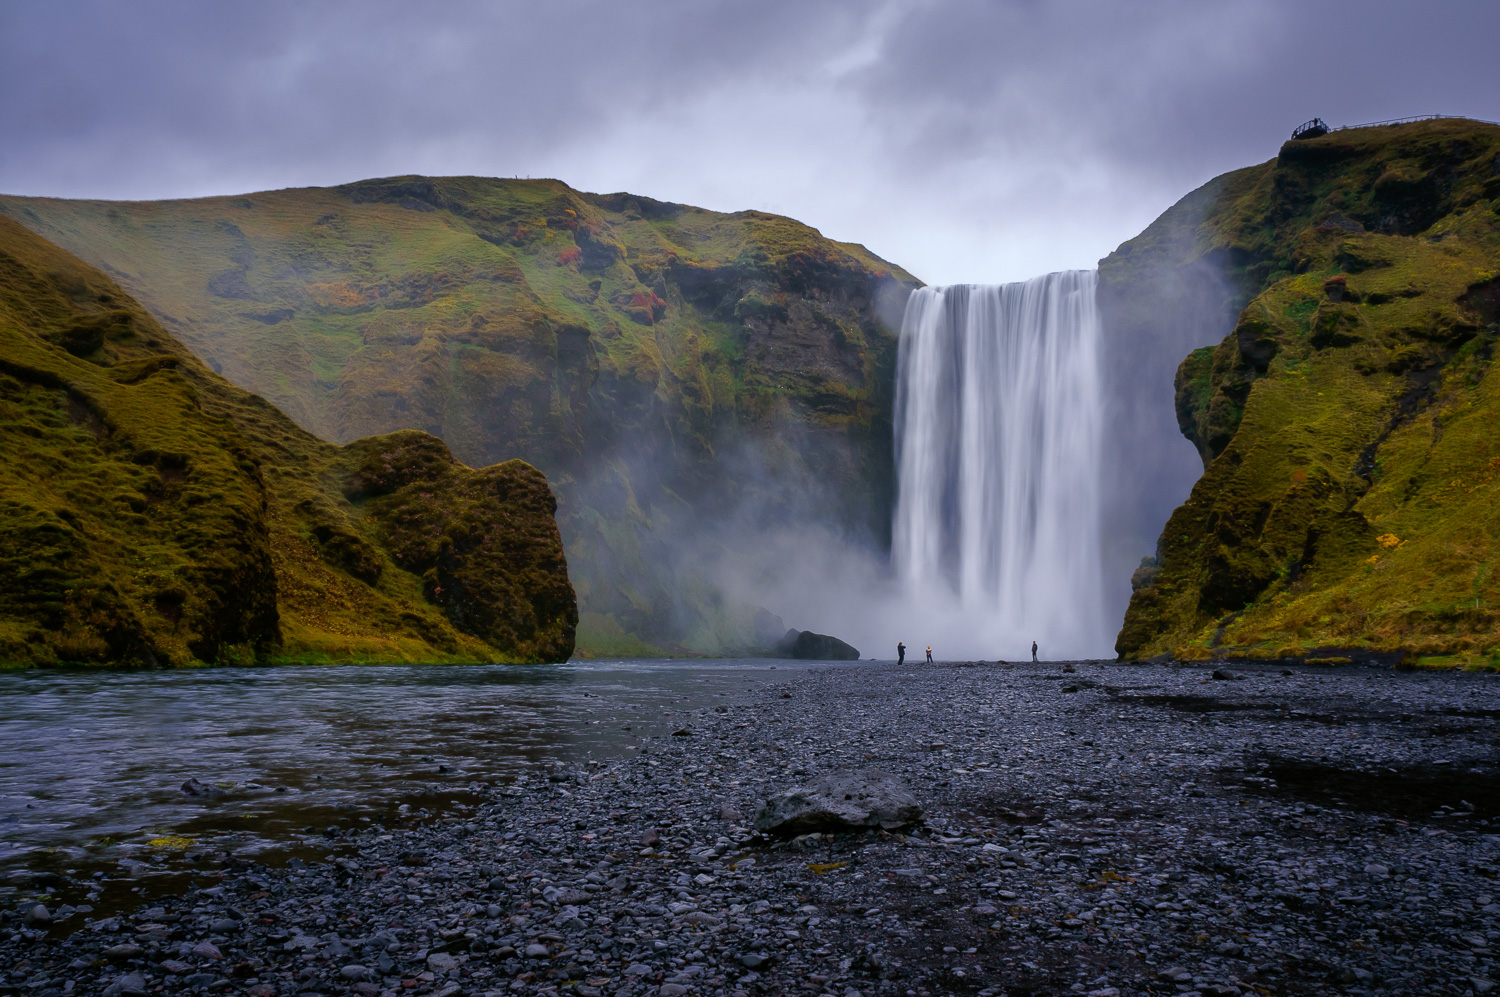 Skogafoss Iceland by Anne McKinnell - Beginner's Guide to Natural Light in Landscape Photography